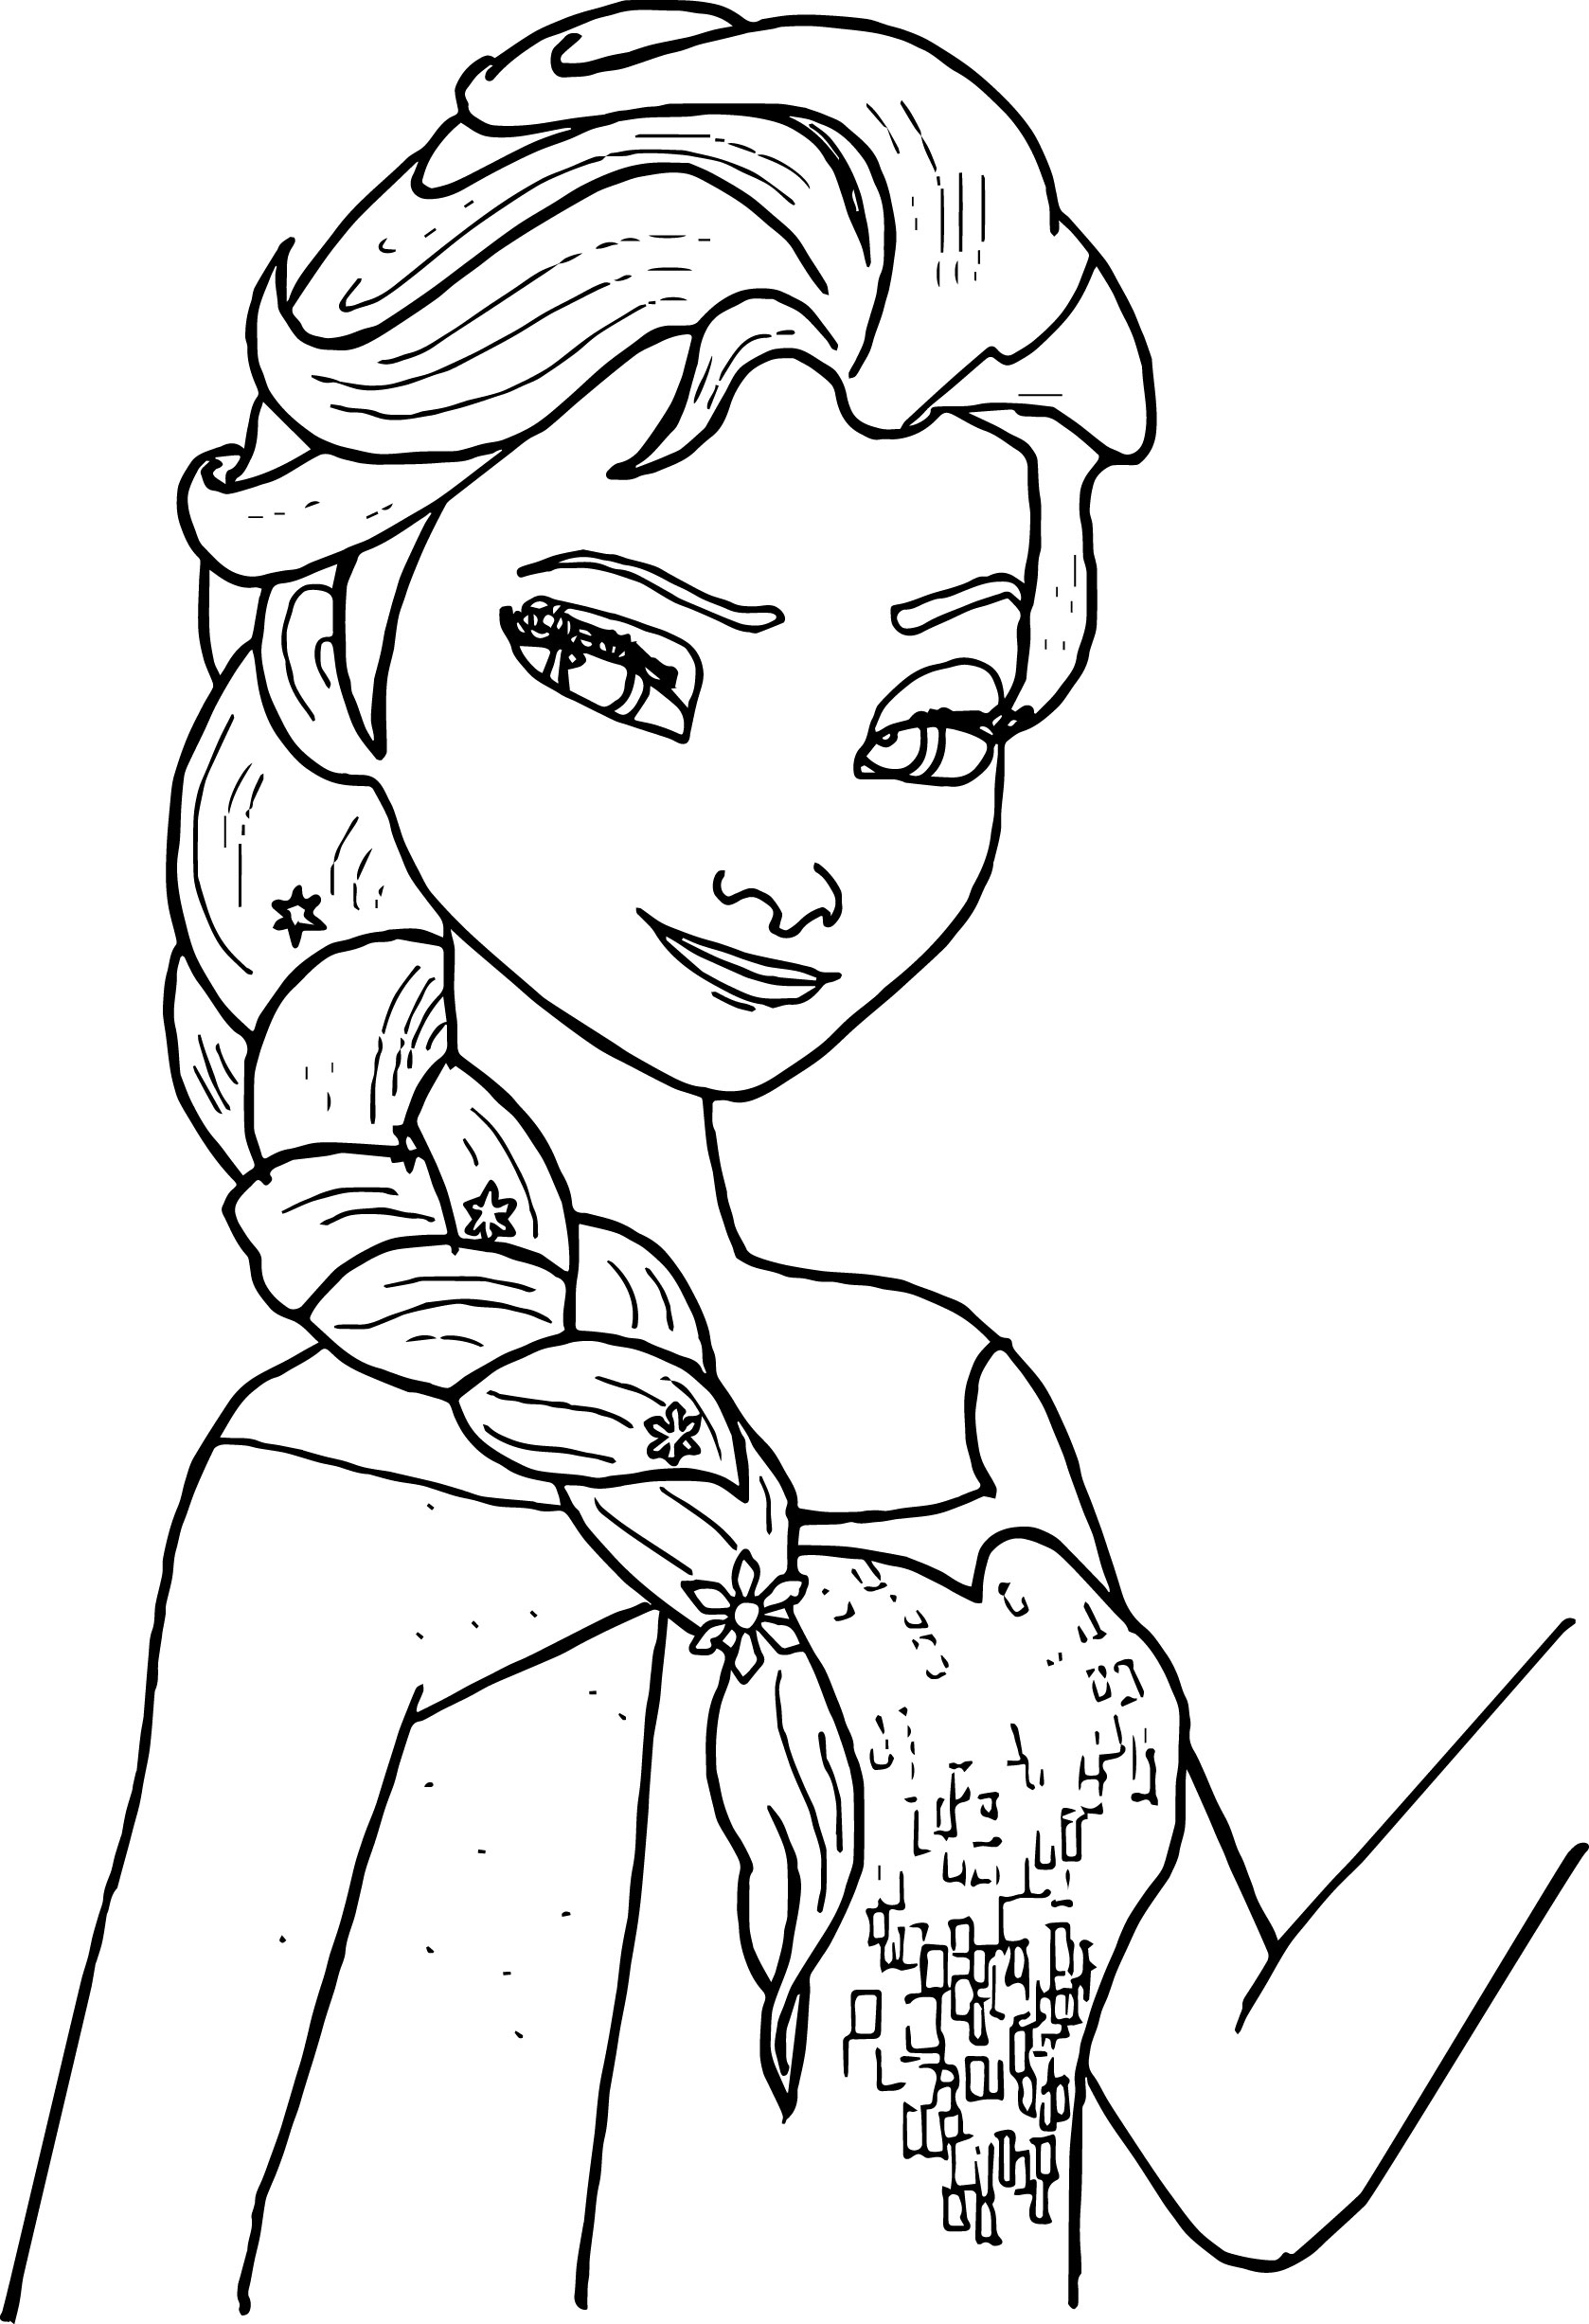 kids christmas coloring pages frozen - photo#28